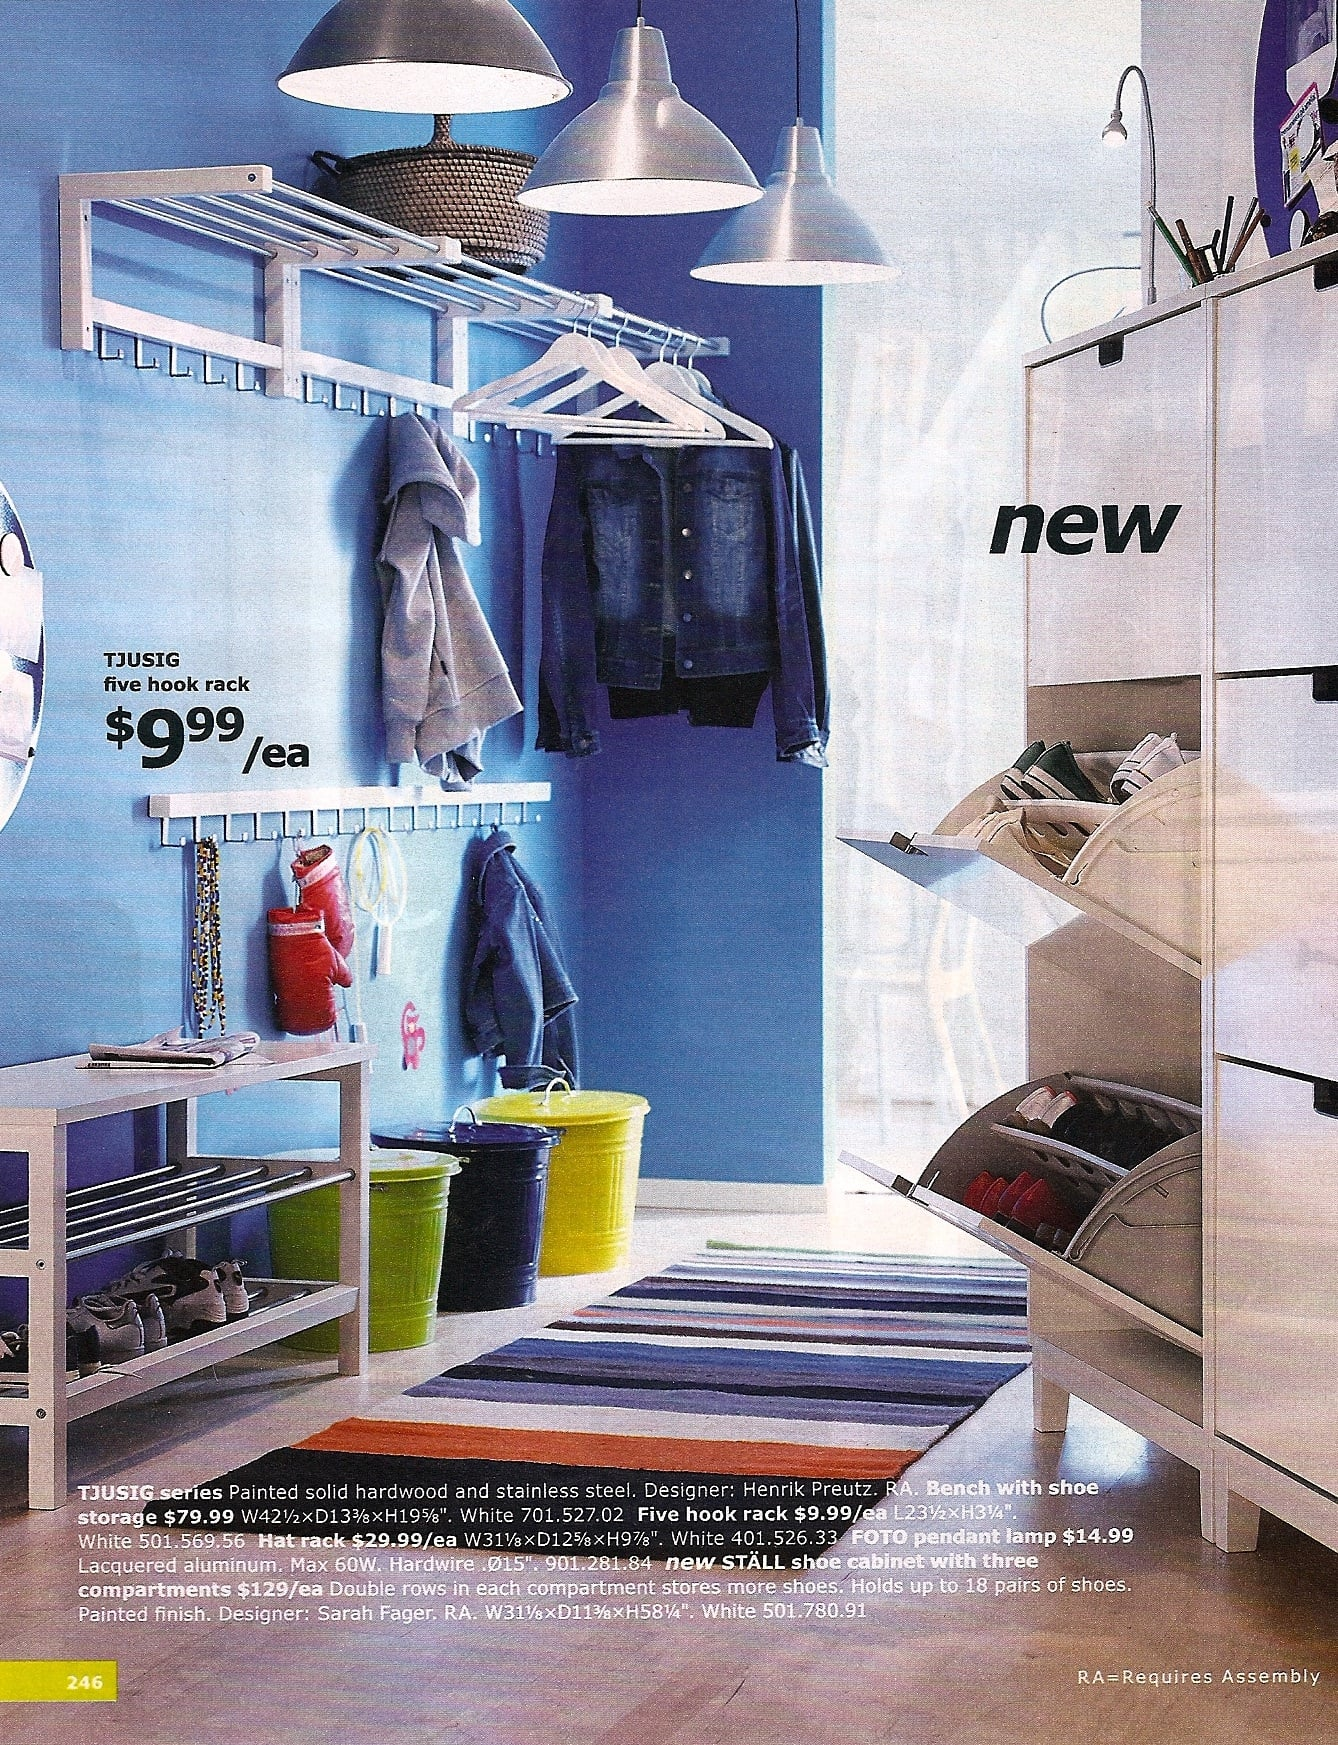 The new Stall Shoe Cabinet ($129) with three compartments looks like a life-saver.